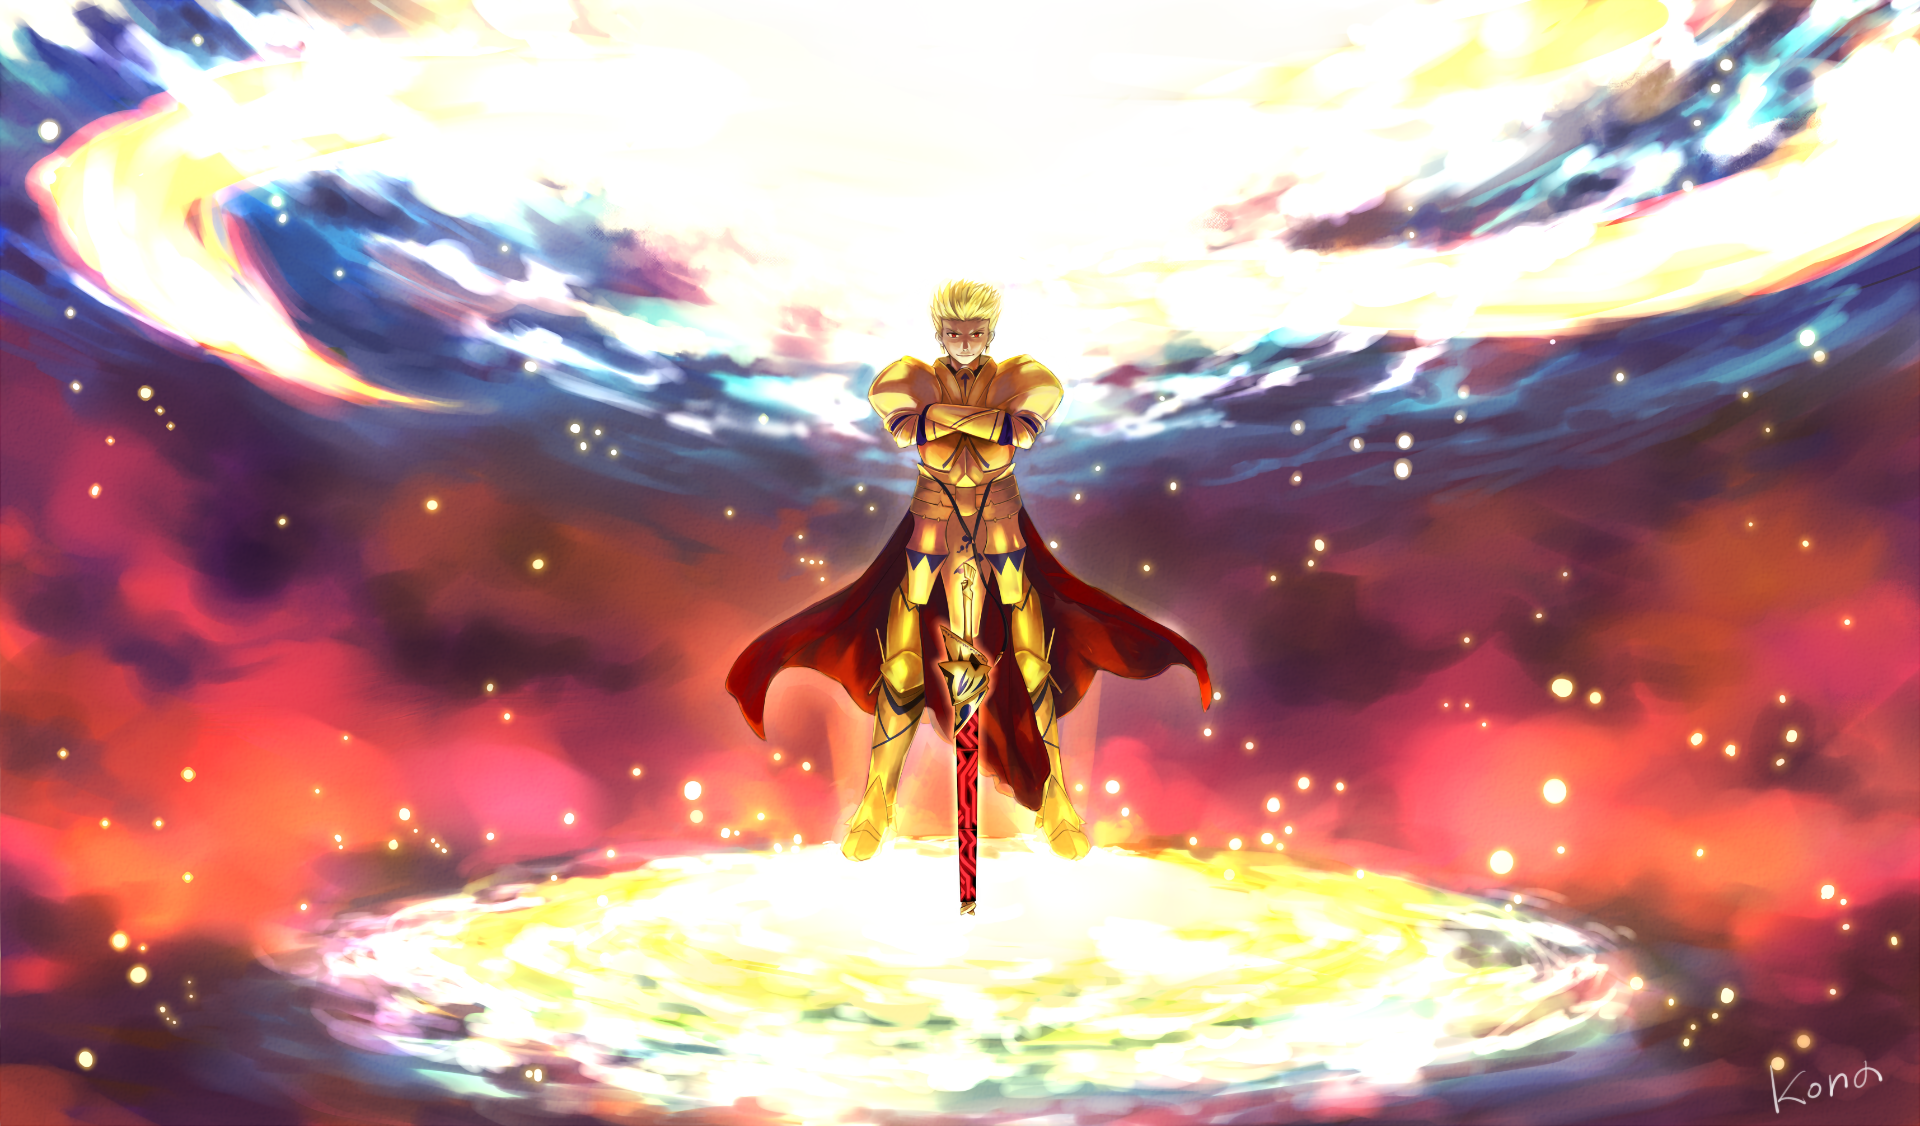 Anime Fategrand Order Gilgamesh Fatestay Night Fondo De